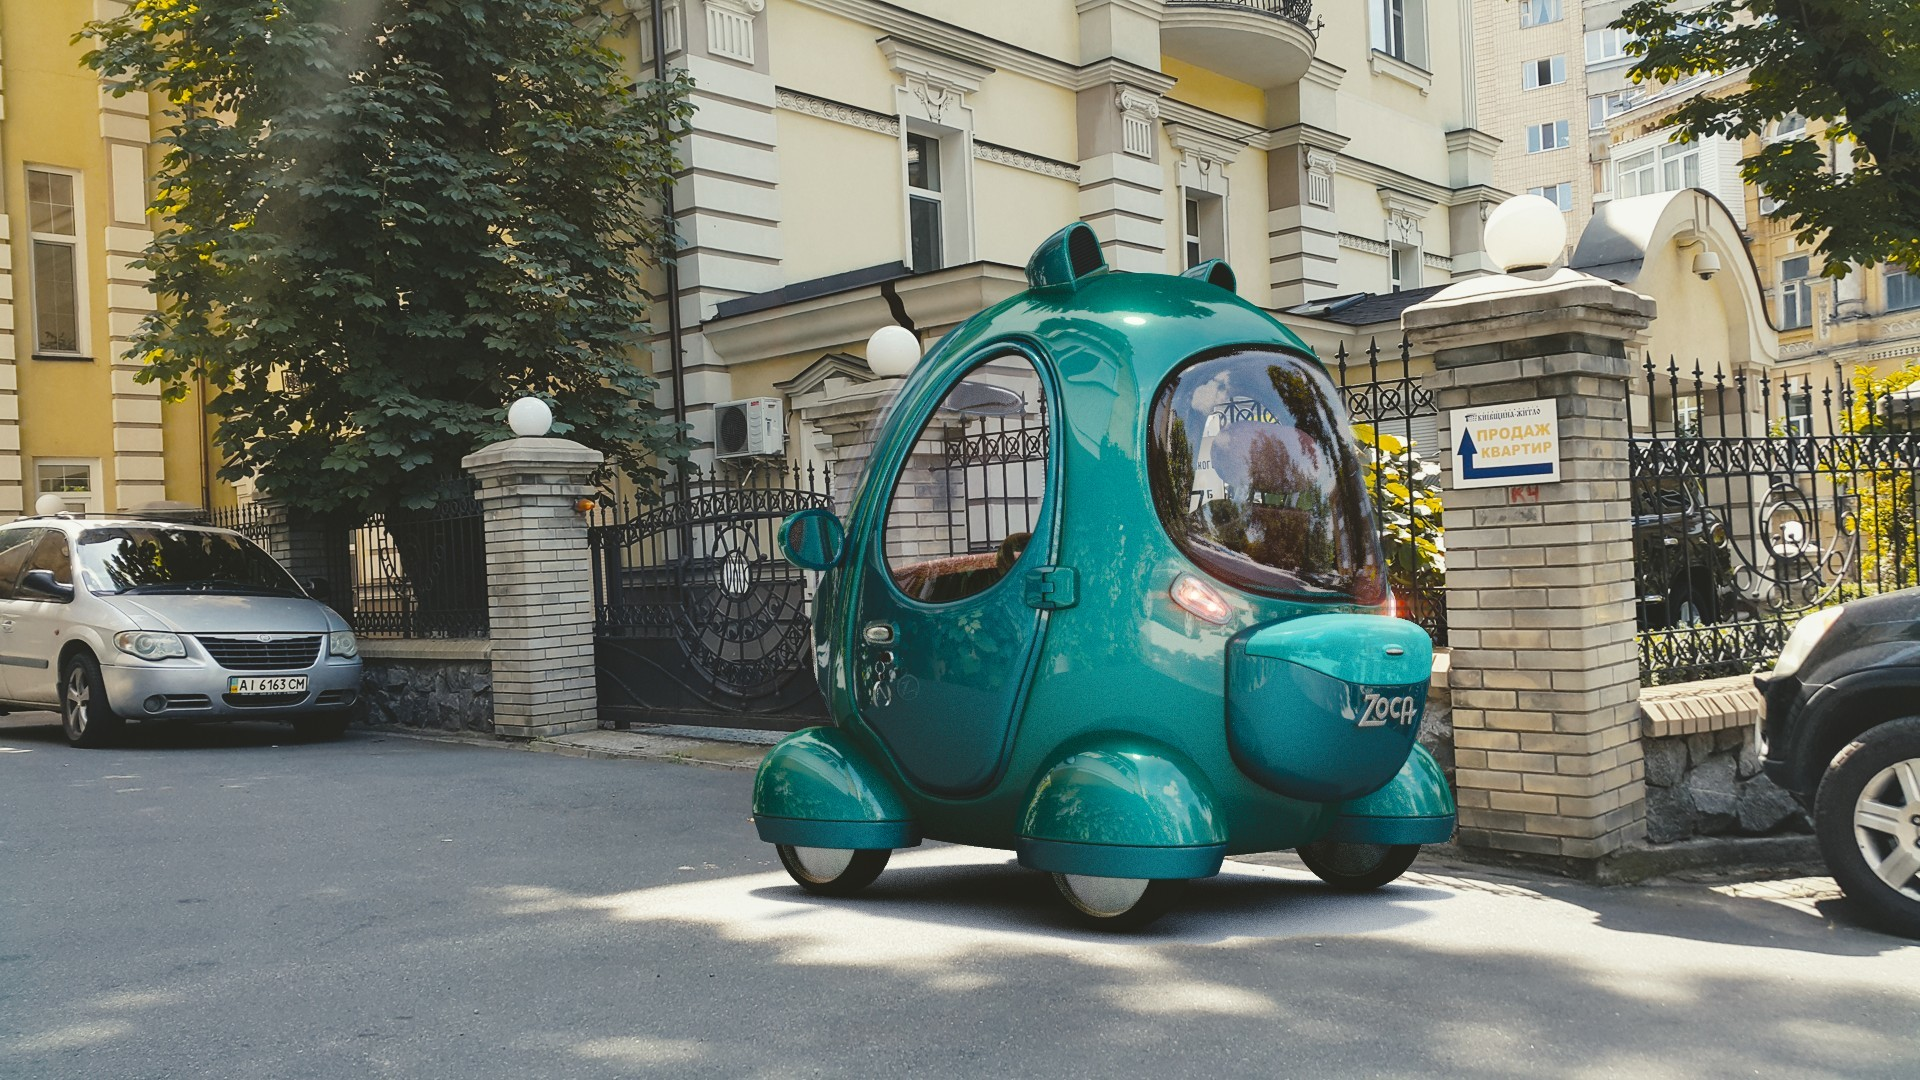 sviatoslav-petrov-render-9 Cool Review About Zootopia Cars with Inspiring Images Cars Review